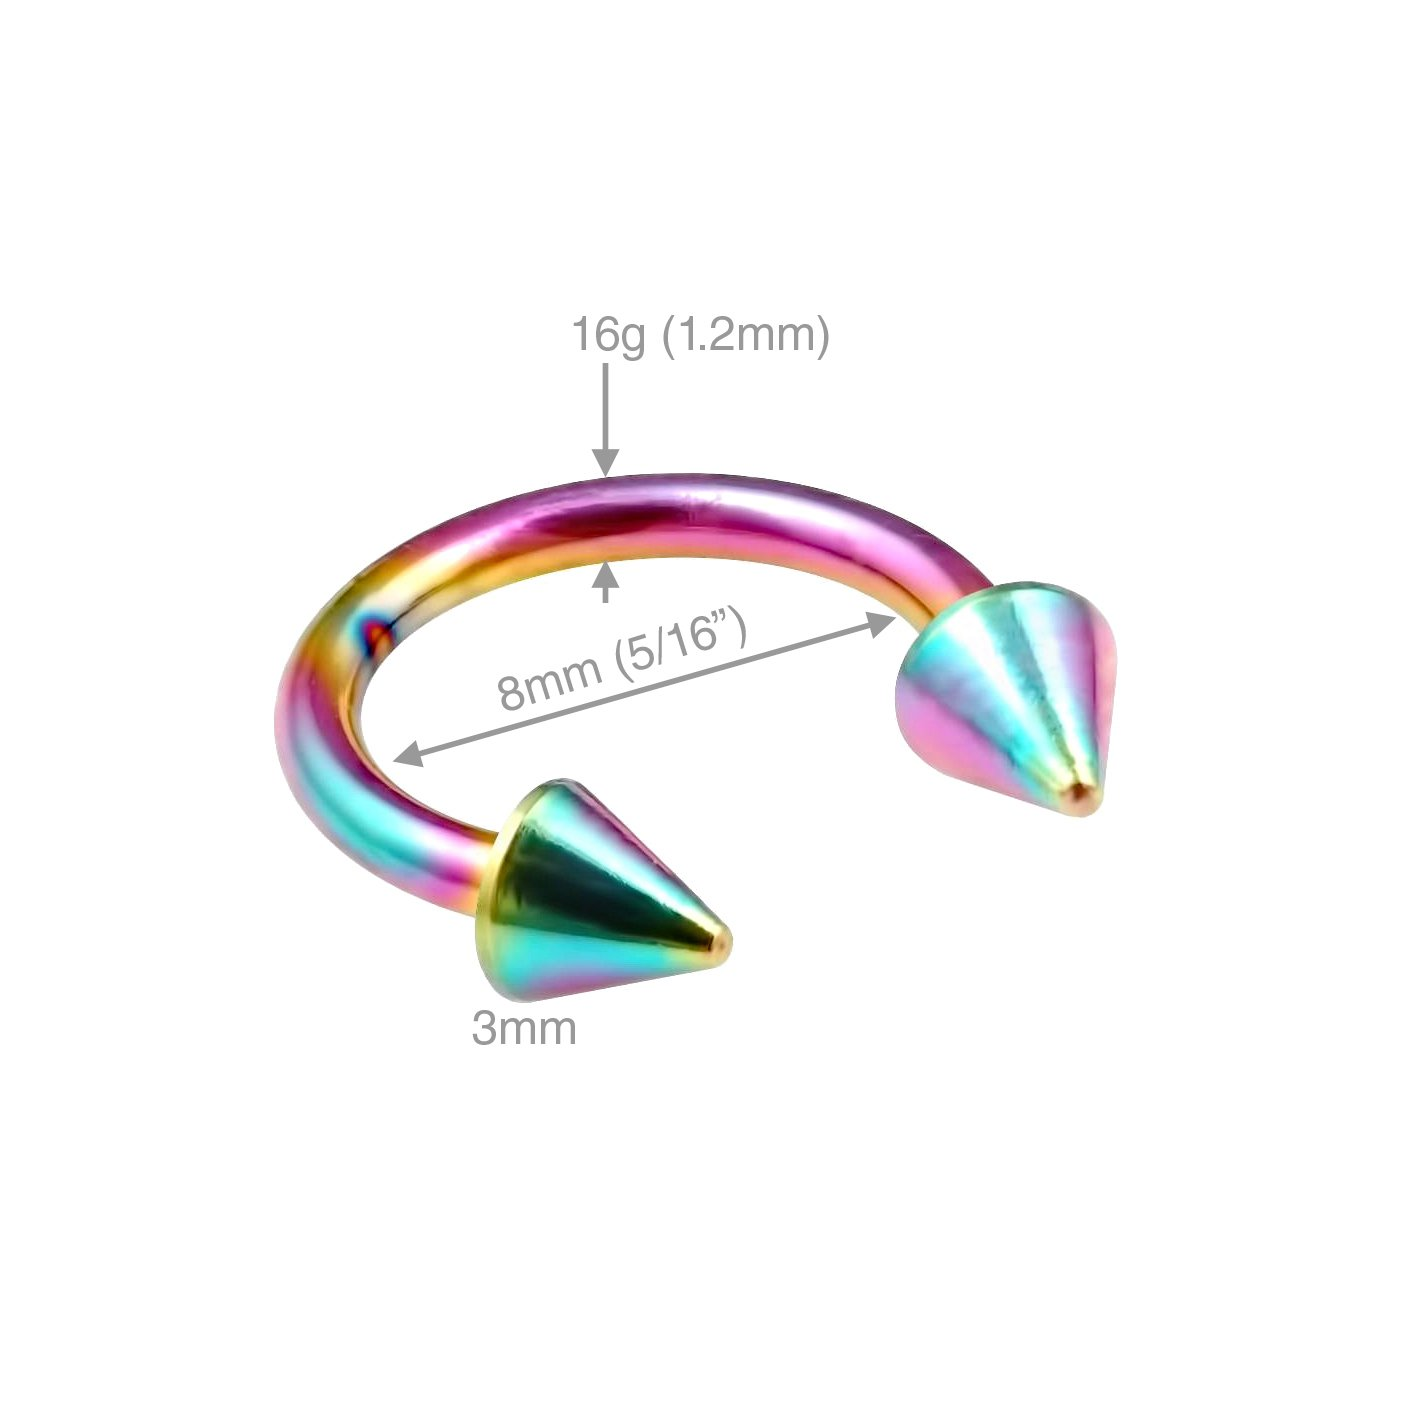 Amazon.com: 16 G Captive Bead anillo Cartílago aro Piercing ...